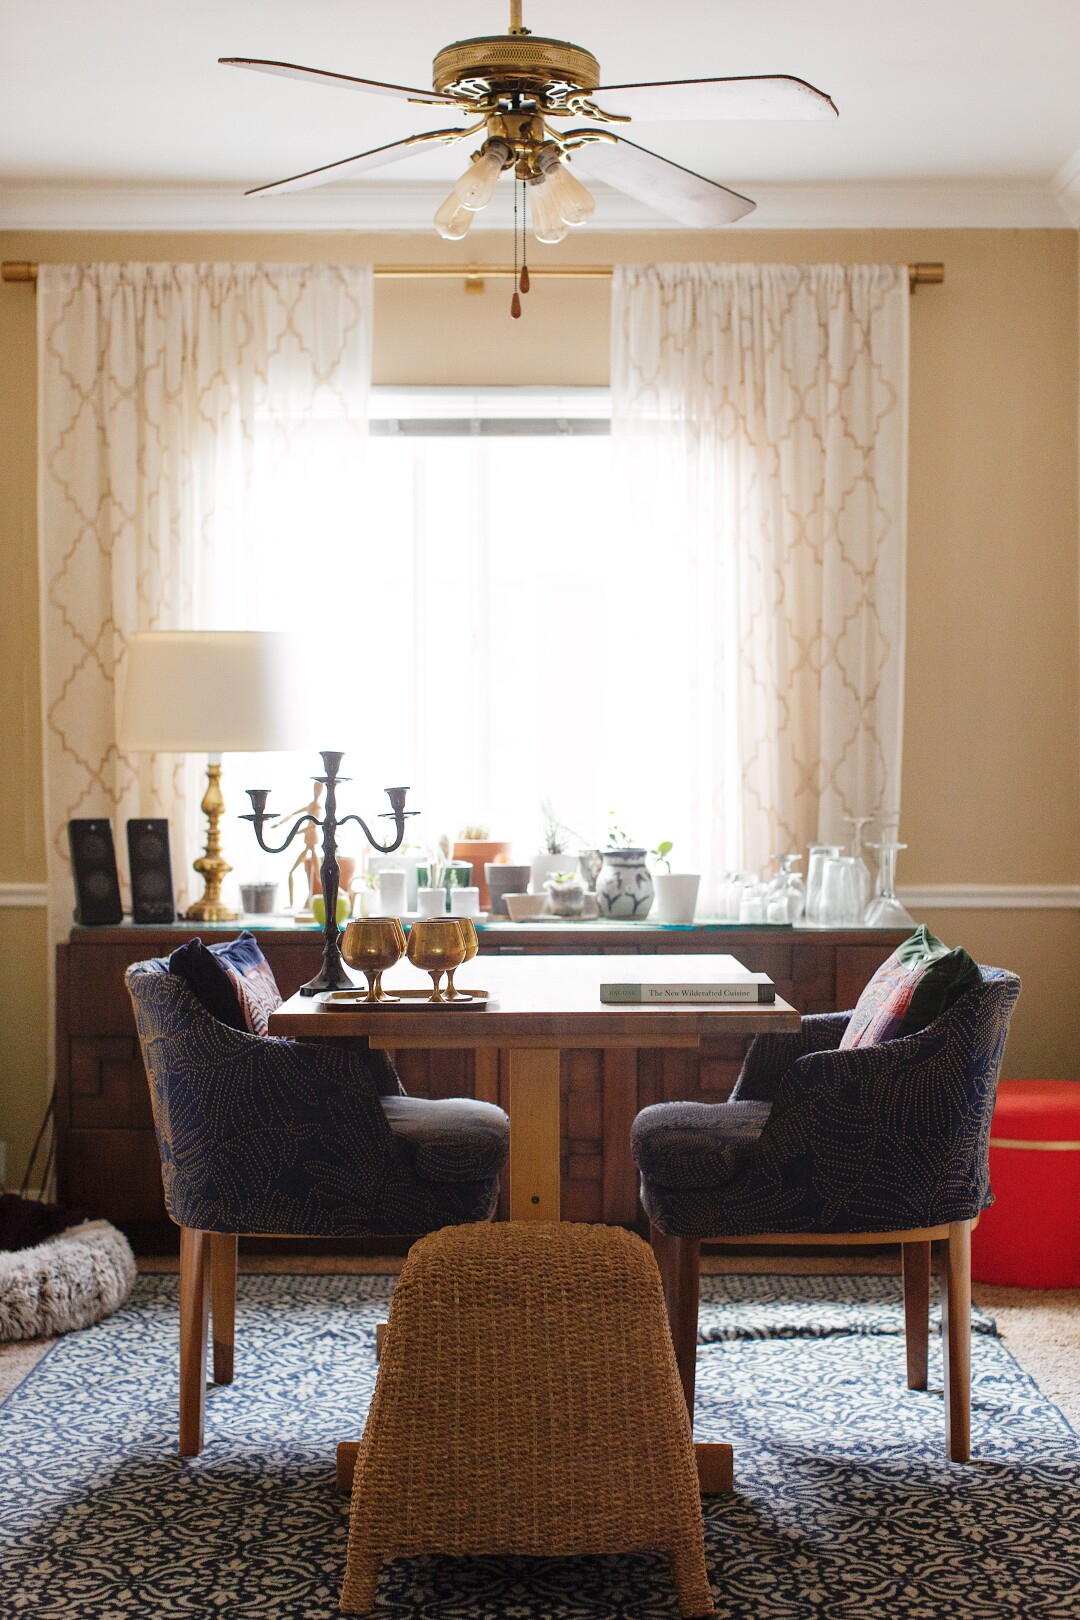 McNeill's dining room contains several items found on the side of the road, including her two blue dining room chairs.